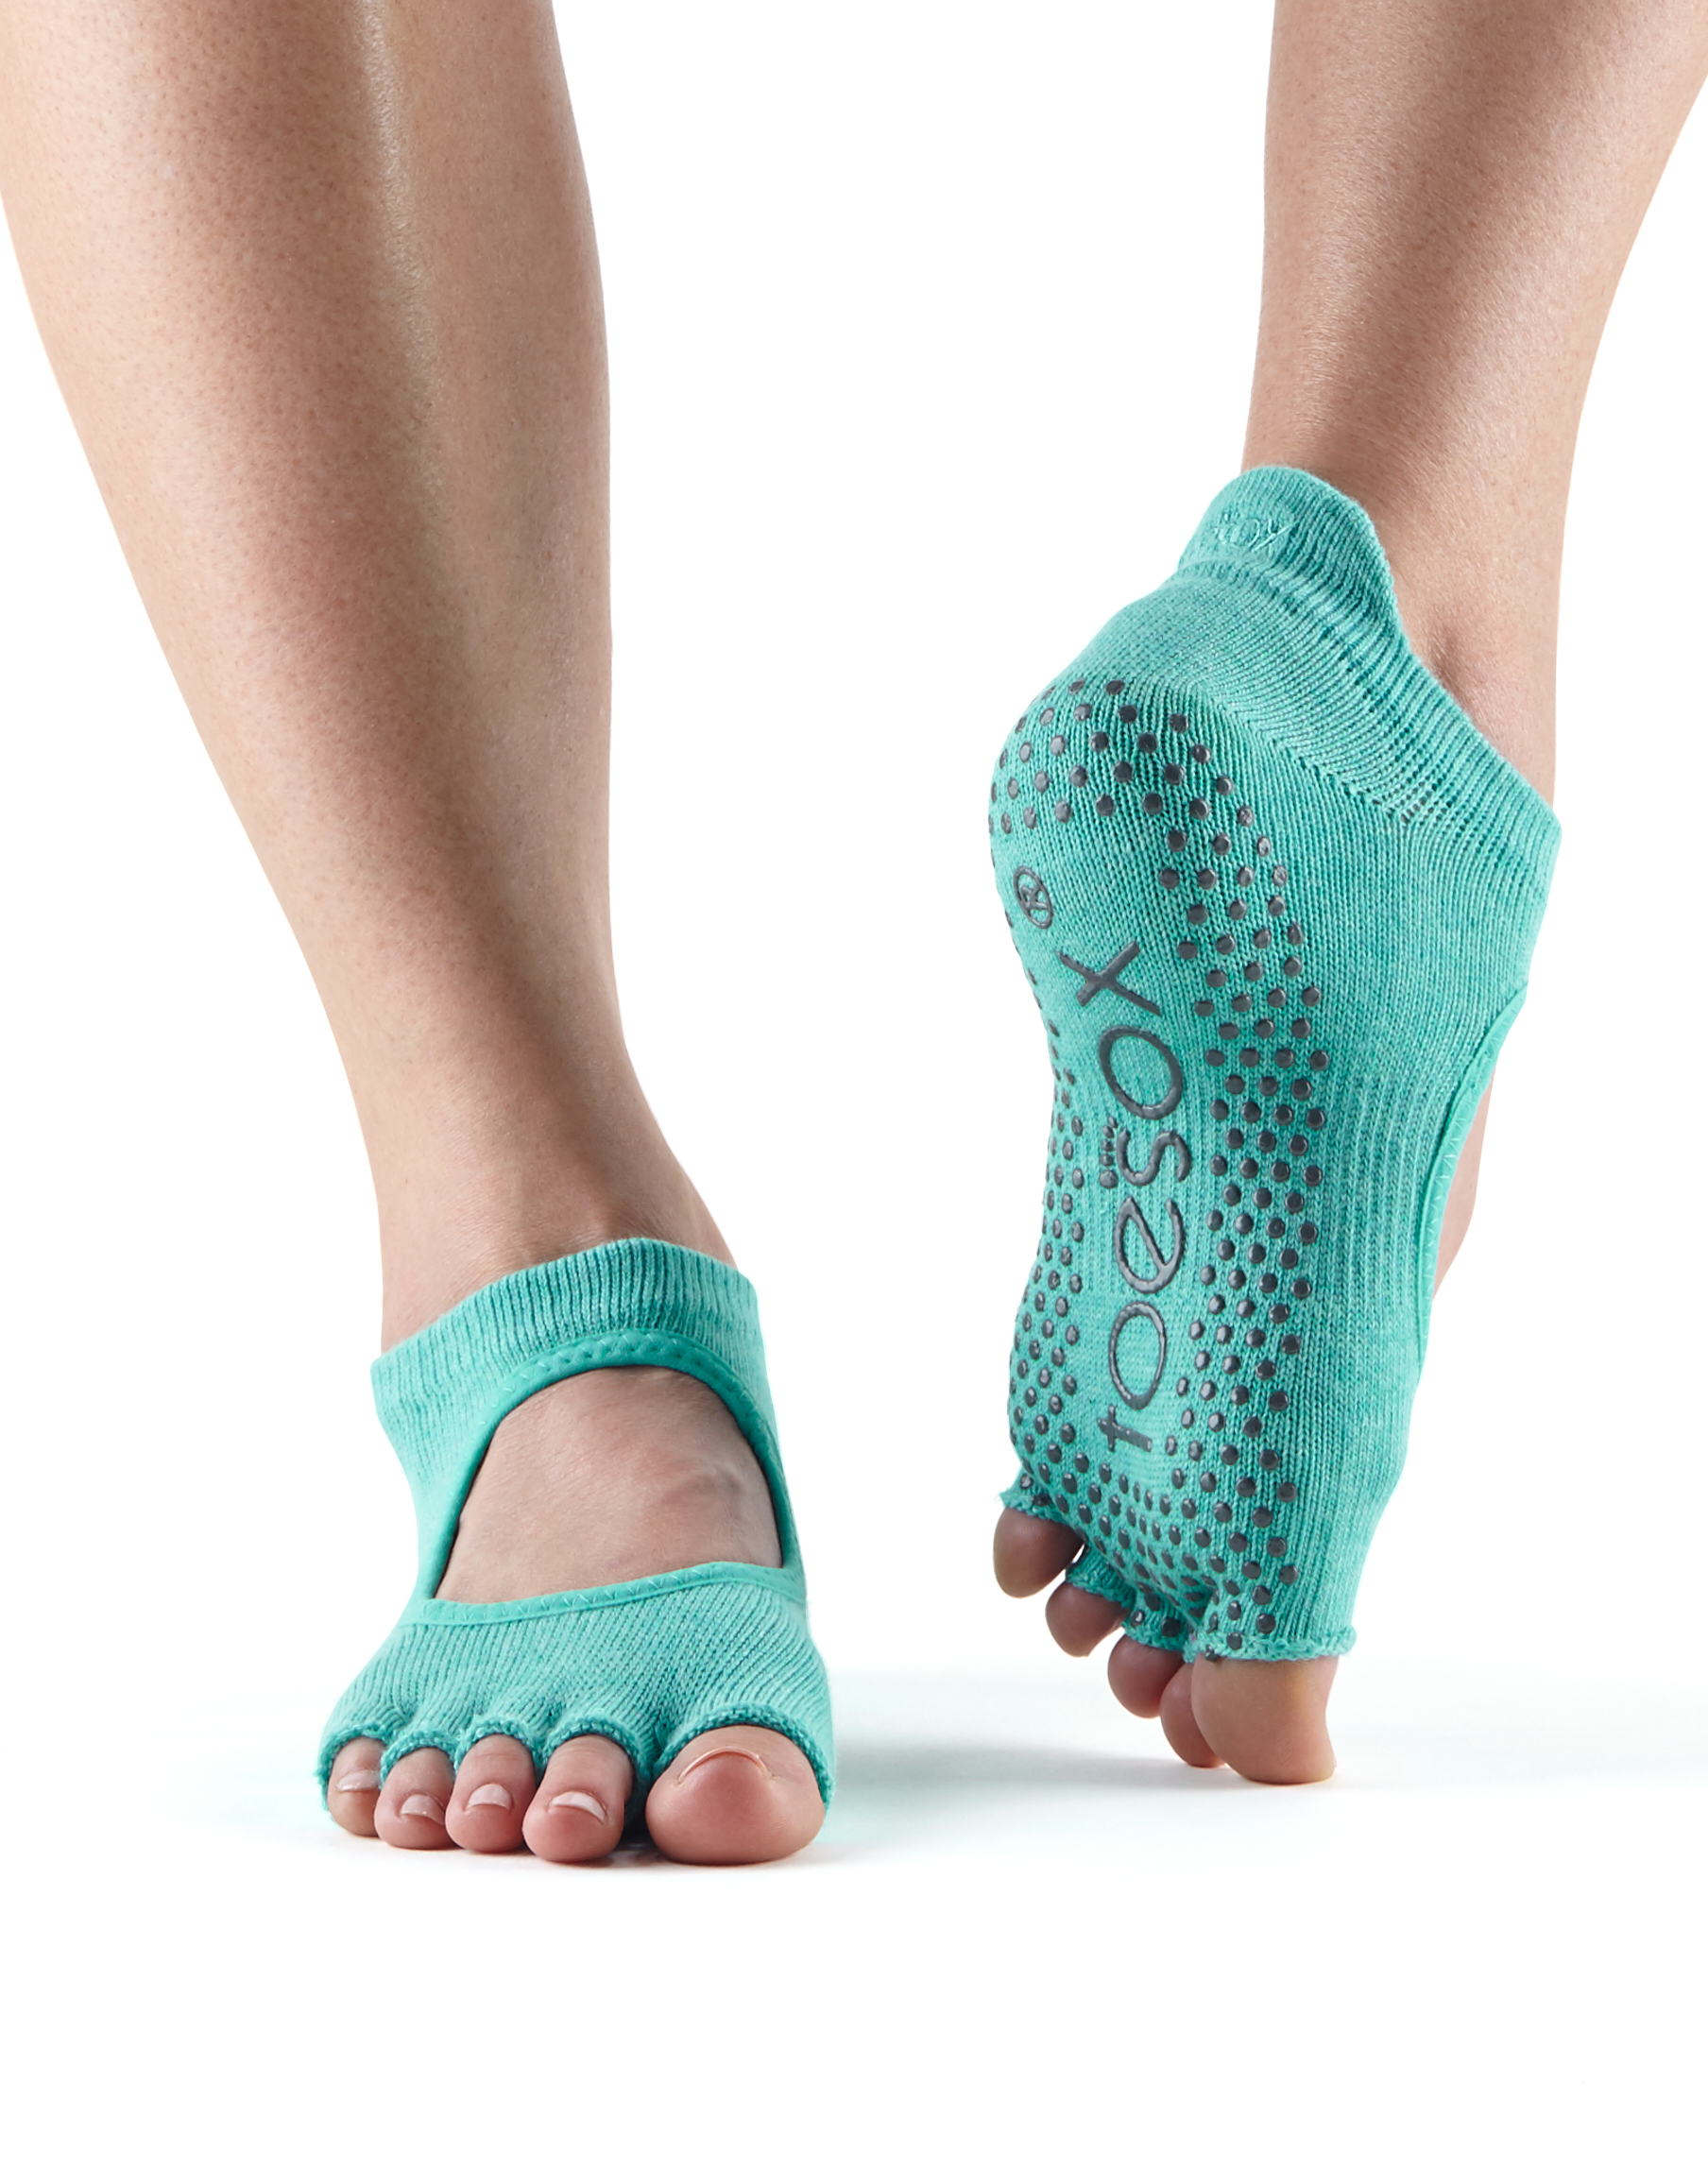 ff54a5bac5f2 ToeSox Half Toe Grip Socks in Bellarina Aqua